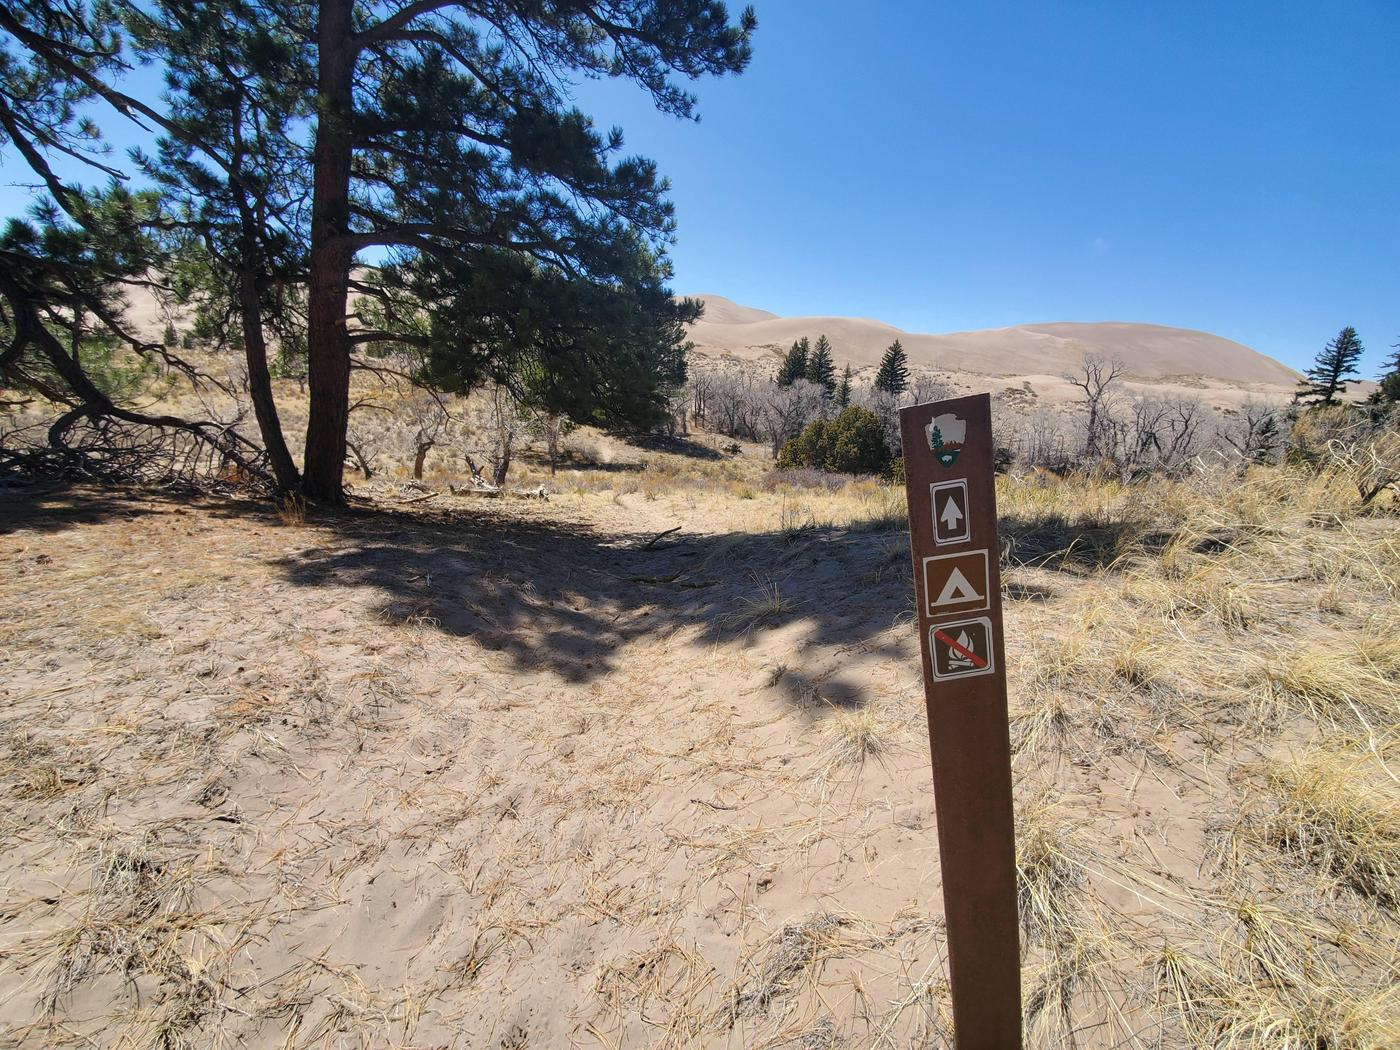 A fiberglass sign marking a sandy trail with dunes in the background near the Indian Grove campsite.While hiking along the trail, this sign marks that you are about to arrive at the Indian Grove campsite.